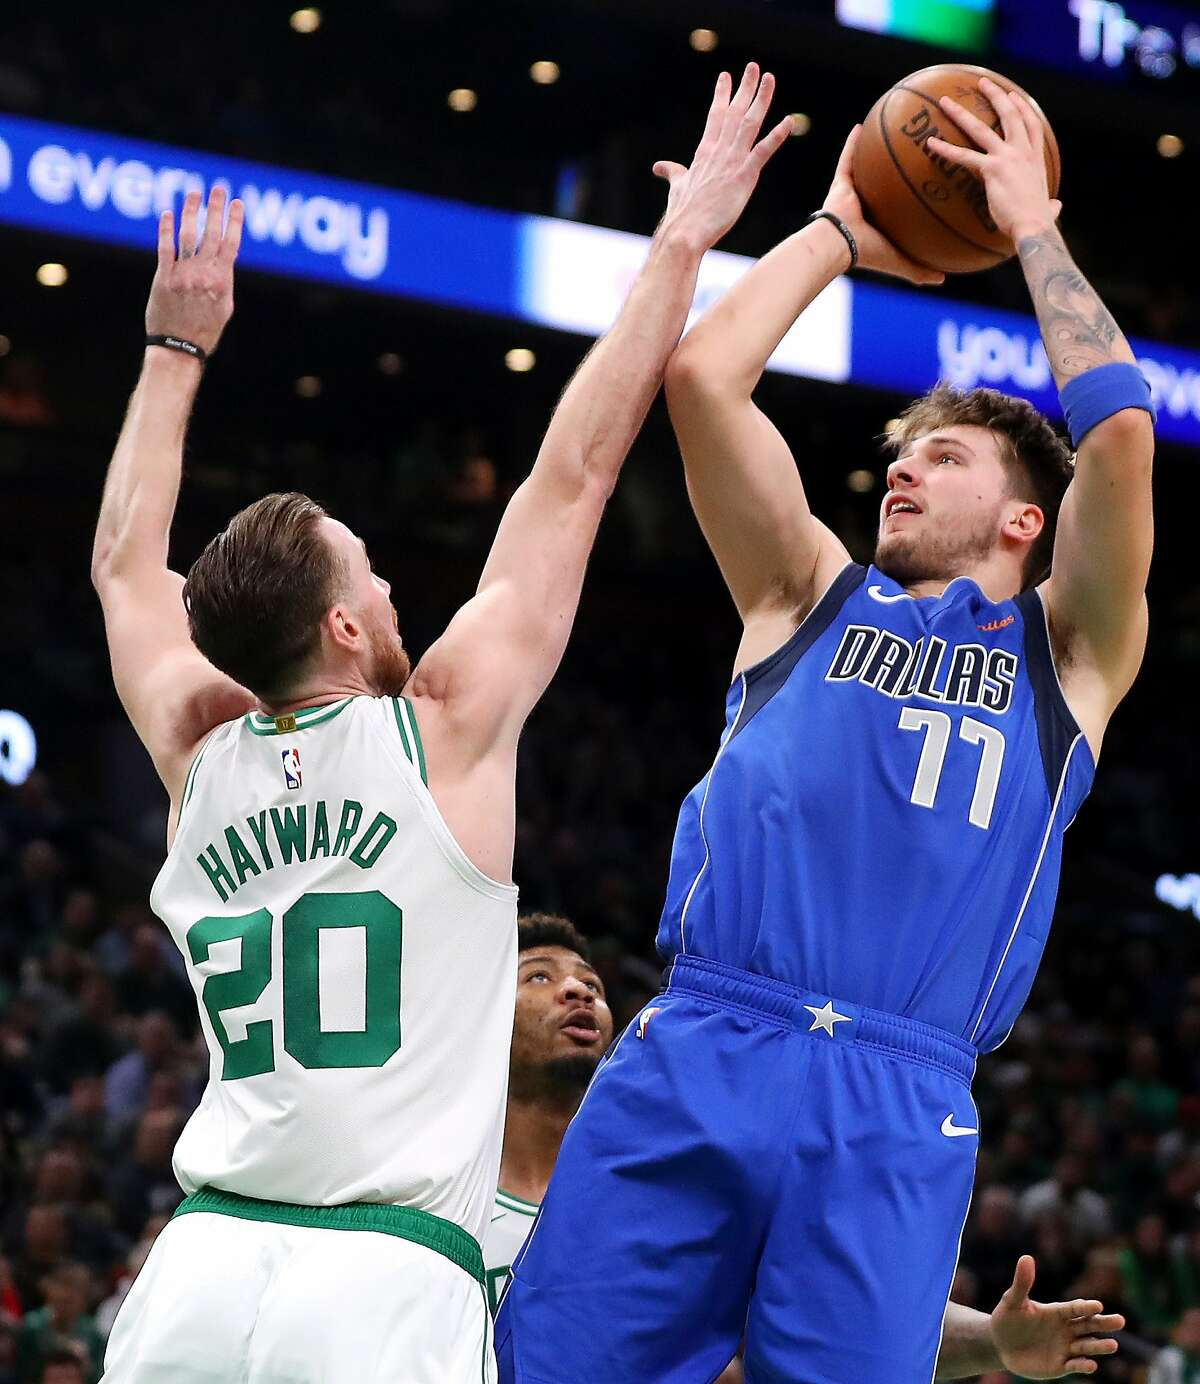 BOSTON, MASSACHUSETTS - JANUARY 04: Luka Doncic #77 of the Dallas Mavericks takes a shot against Gordon Hayward #20 of the Boston Celtics during the first half at TD Garden on January 04, 2019 in Boston, Massachusetts. NOTE TO USER: User expressly acknowledges and agrees that, by downloading and or using this photograph, User is consenting to the terms and conditions of the Getty Images License Agreement. (Photo by Maddie Meyer/Getty Images)